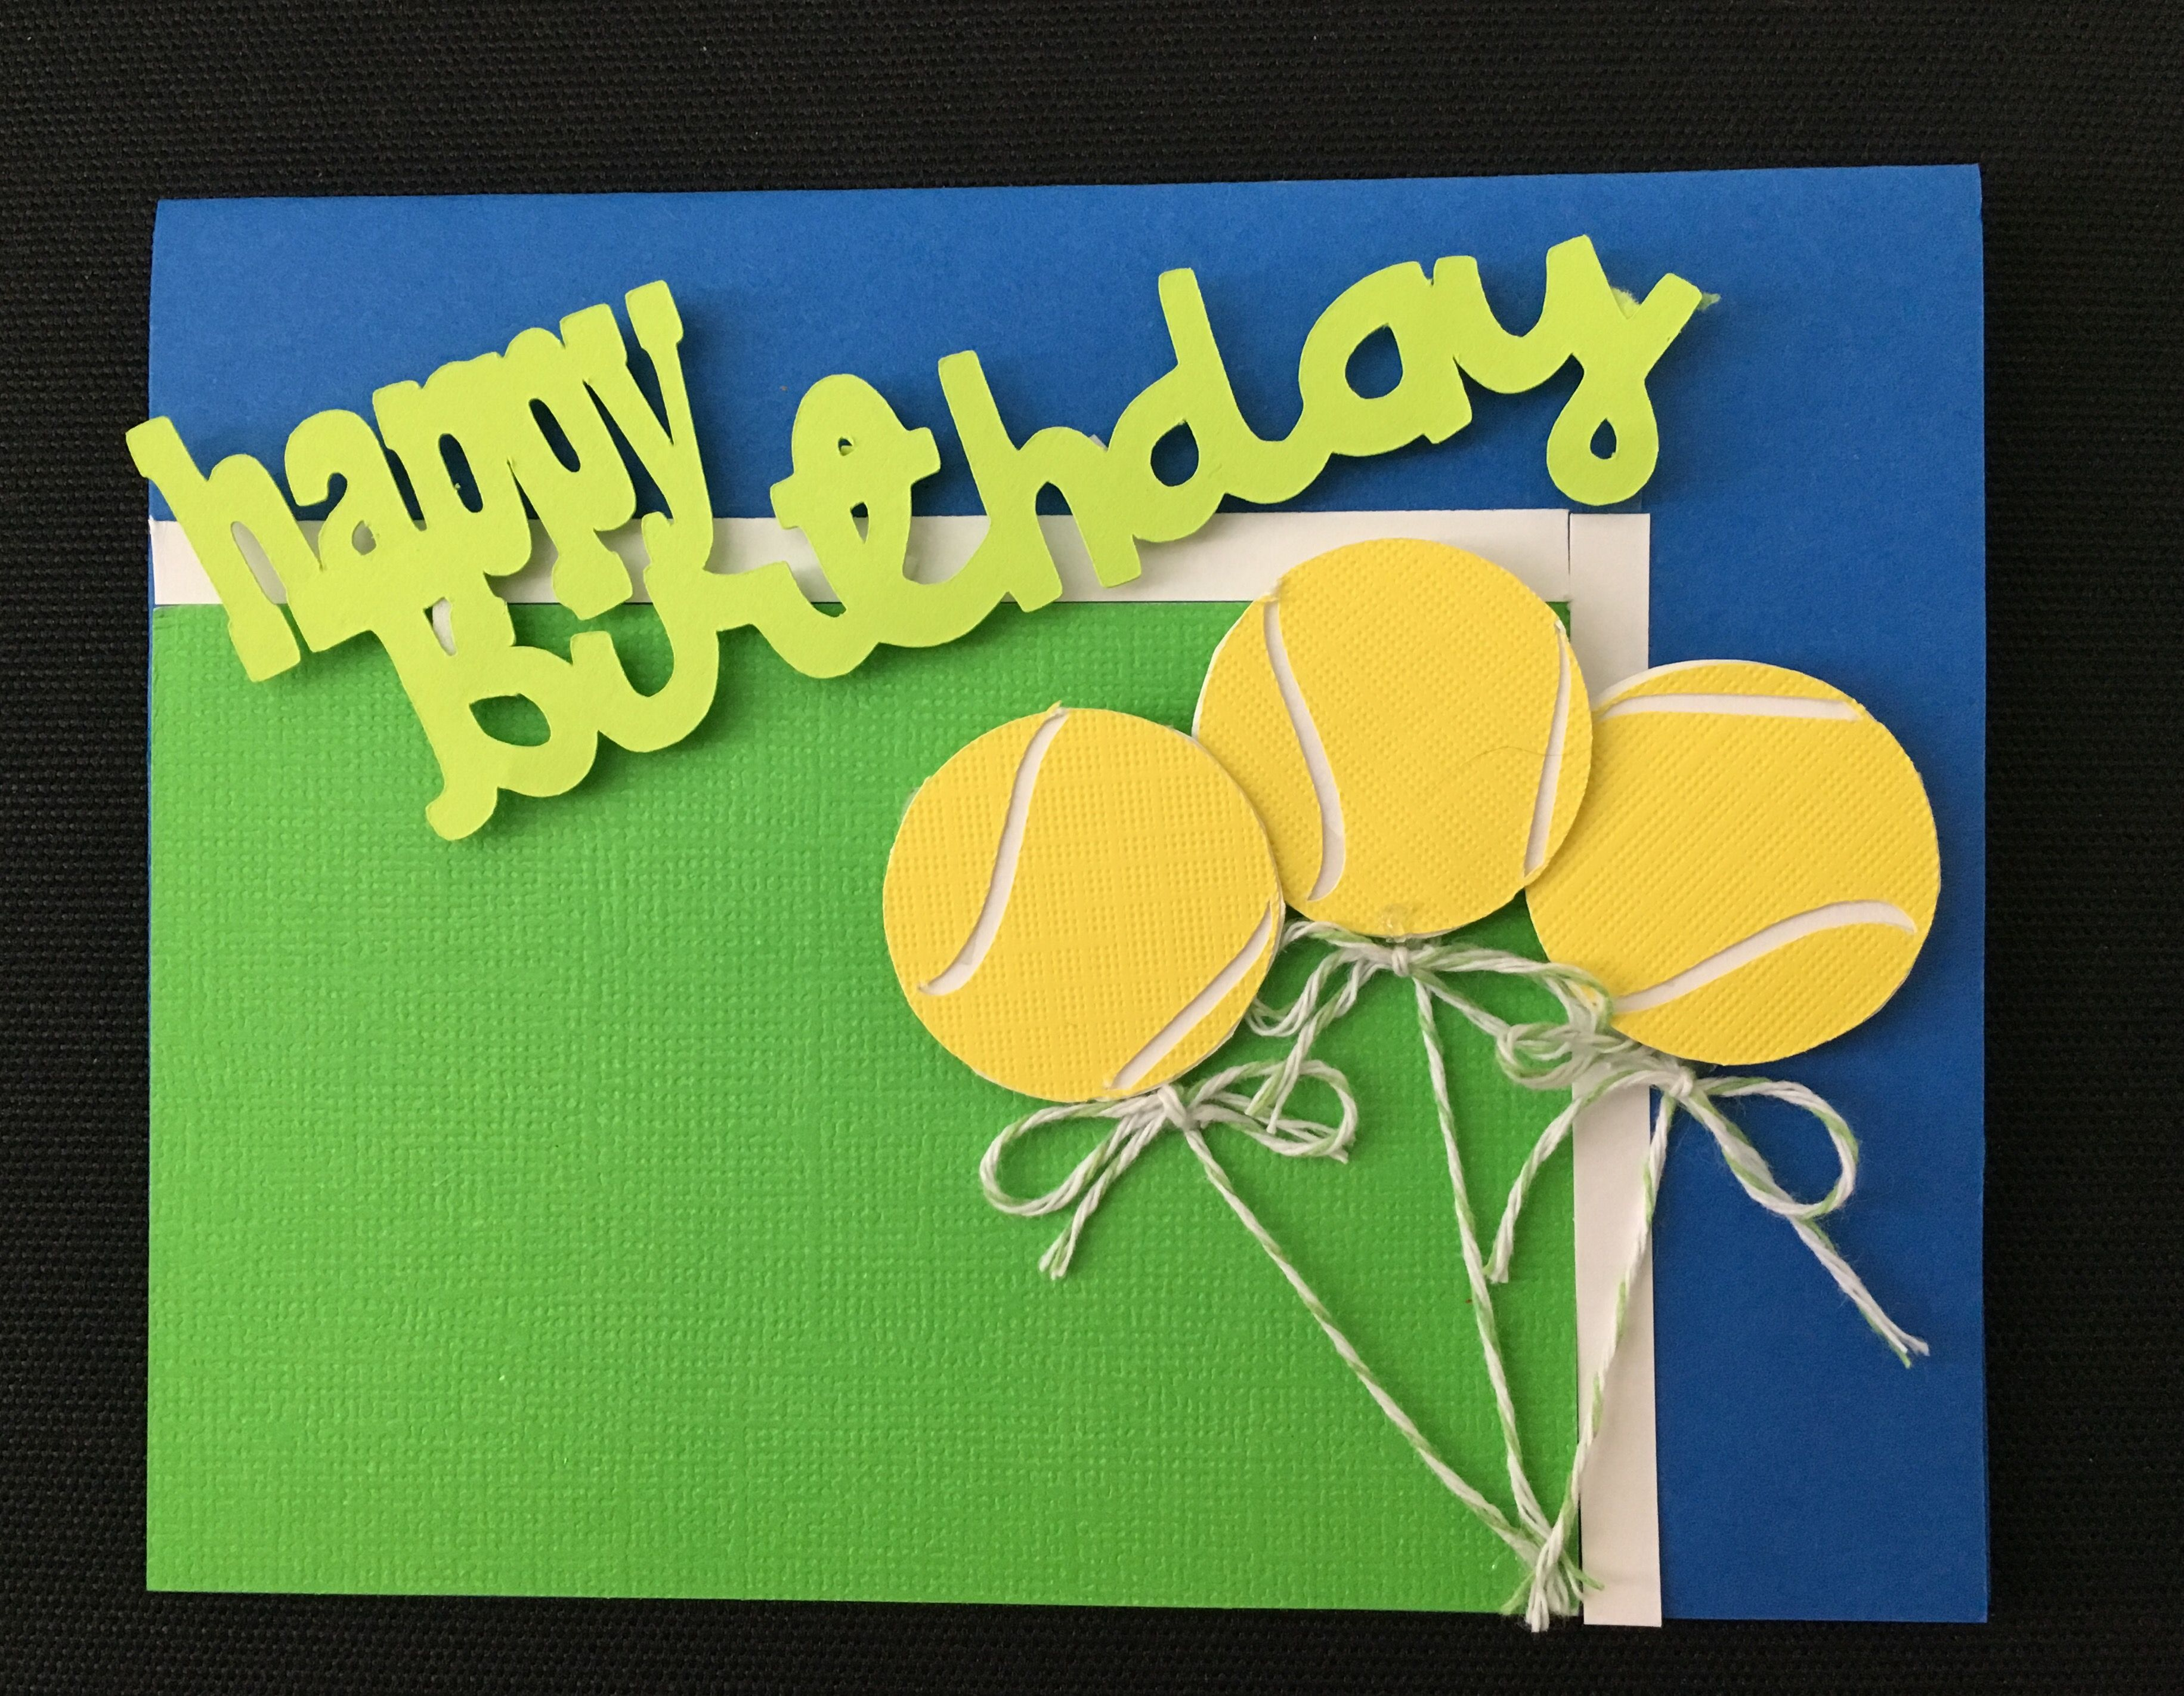 Pin by betsy murray on tennis pinterest tennis cards and tennis homemade cards birthday cards balloon diy gifts tennis greeting cards for birthday tennis sneakers anniversary cards diy cards m4hsunfo Choice Image